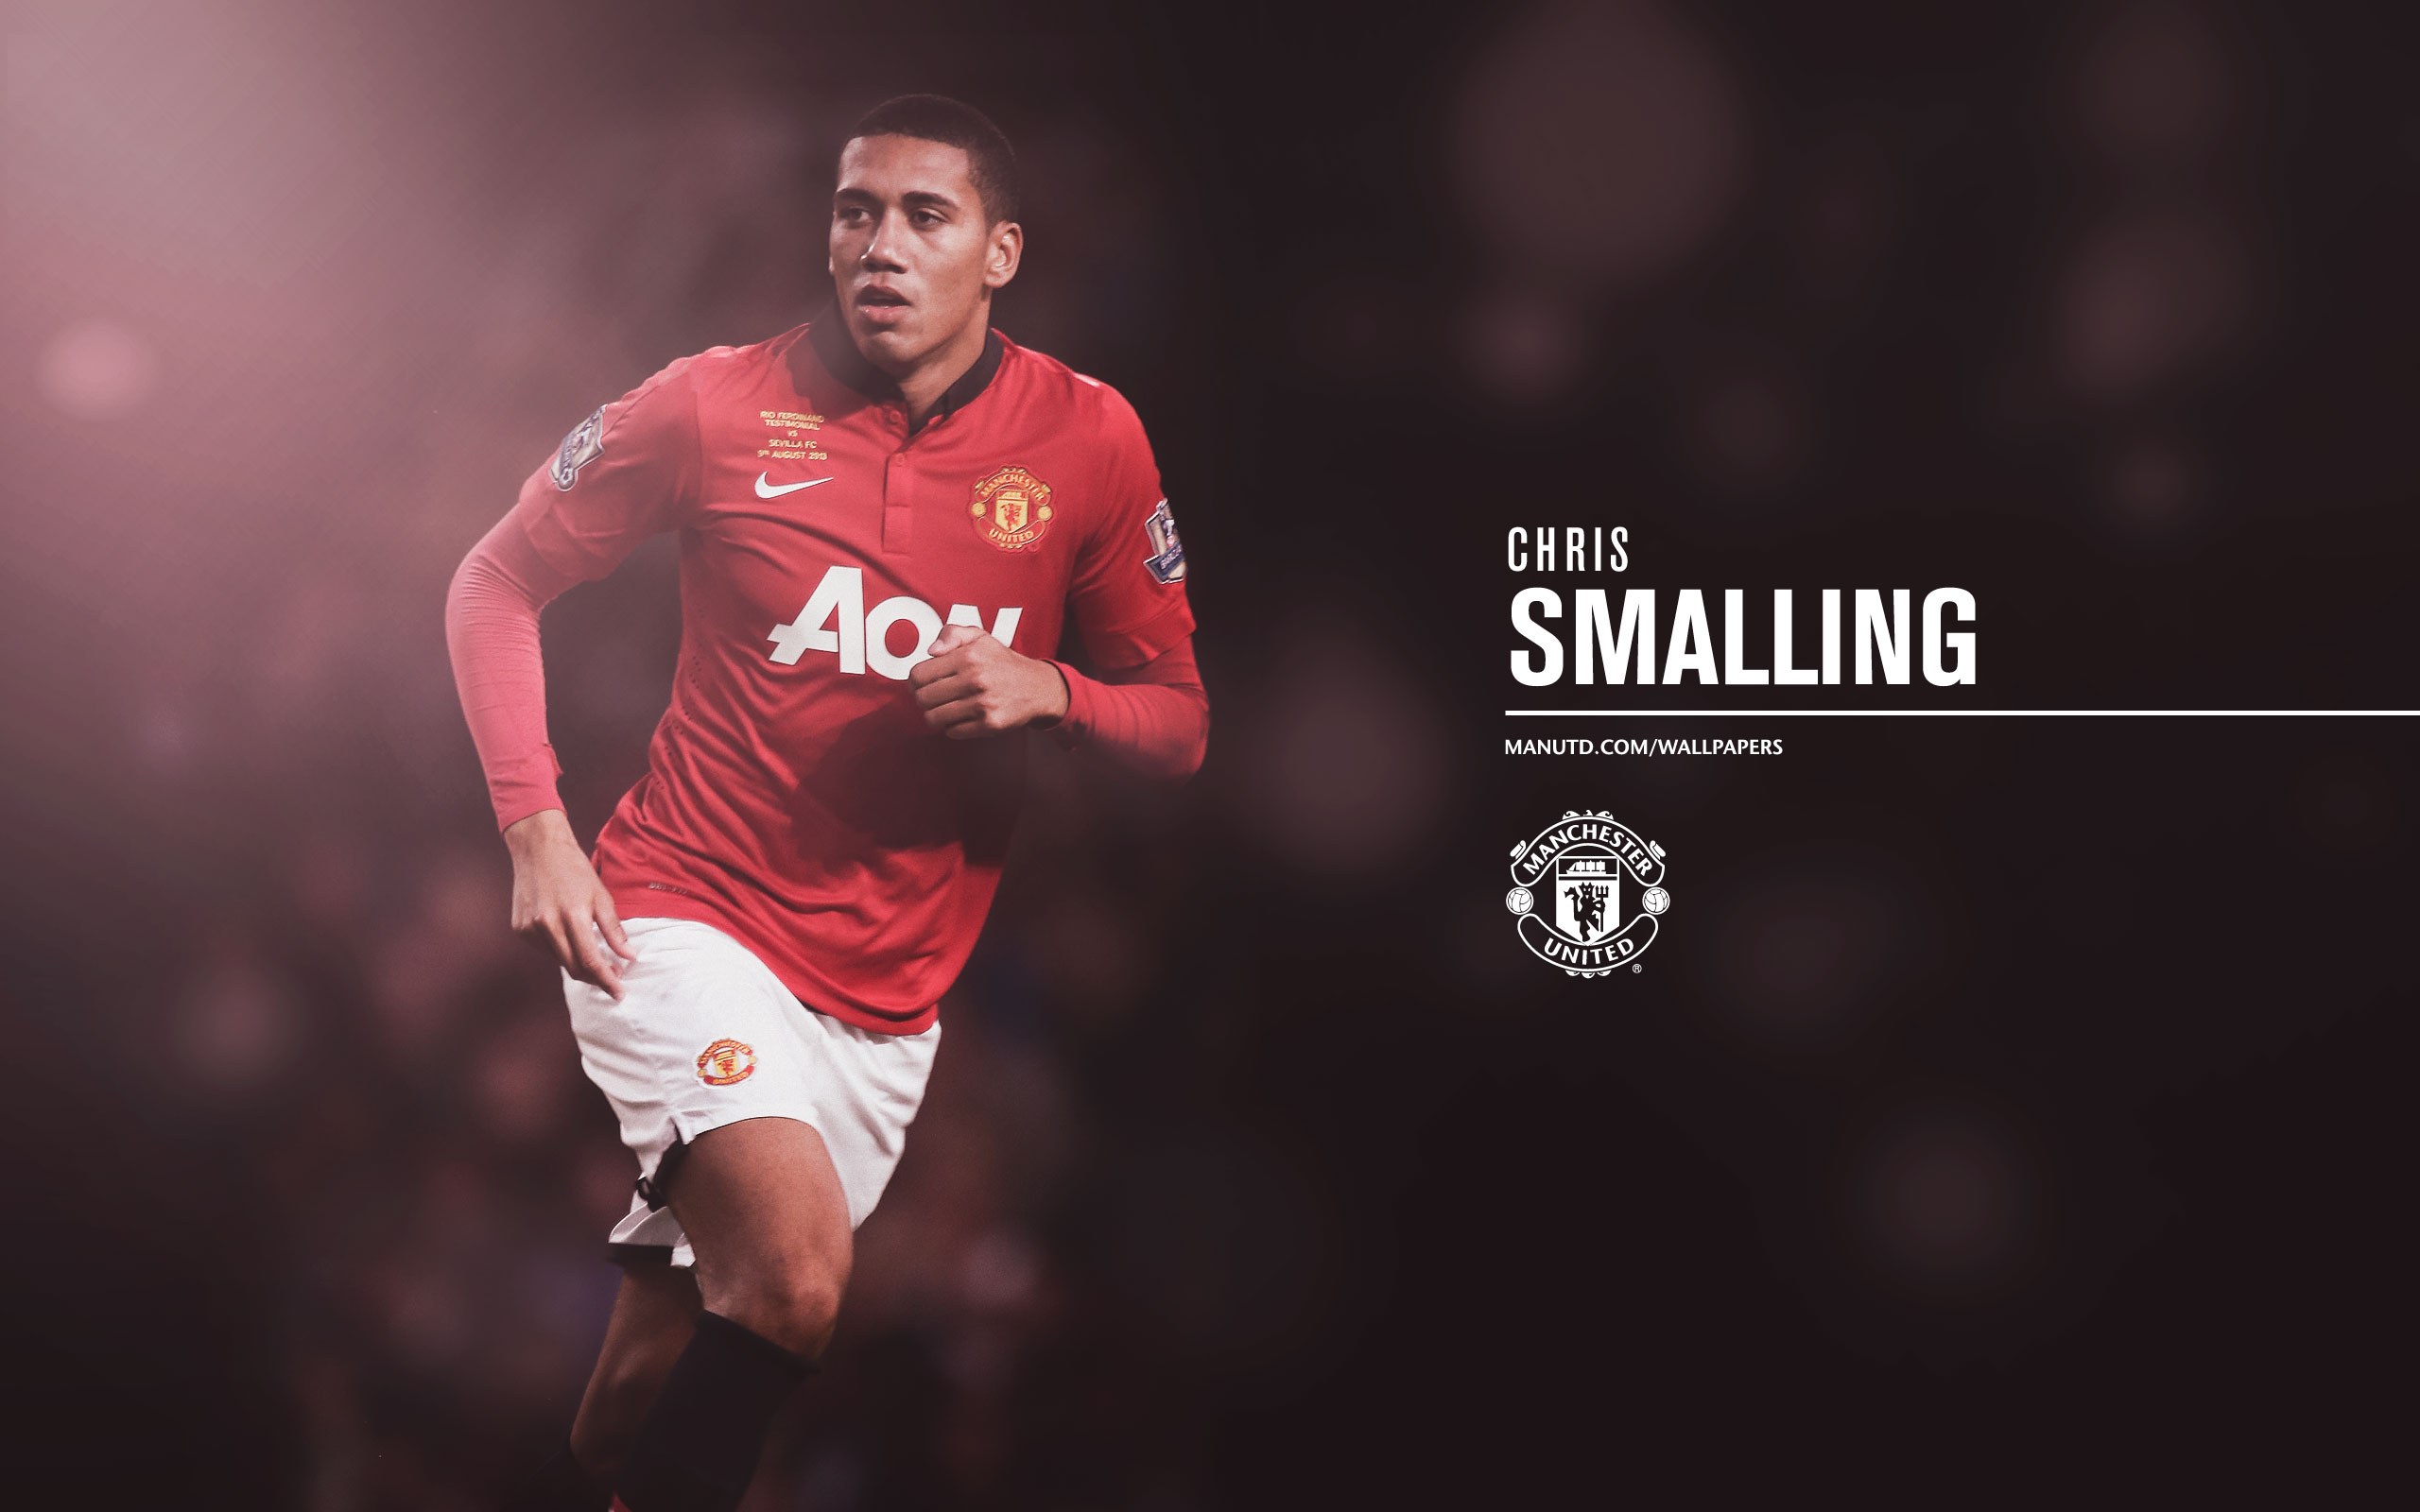 Chris Smalling Football Wallpaper Backgrounds And Picture